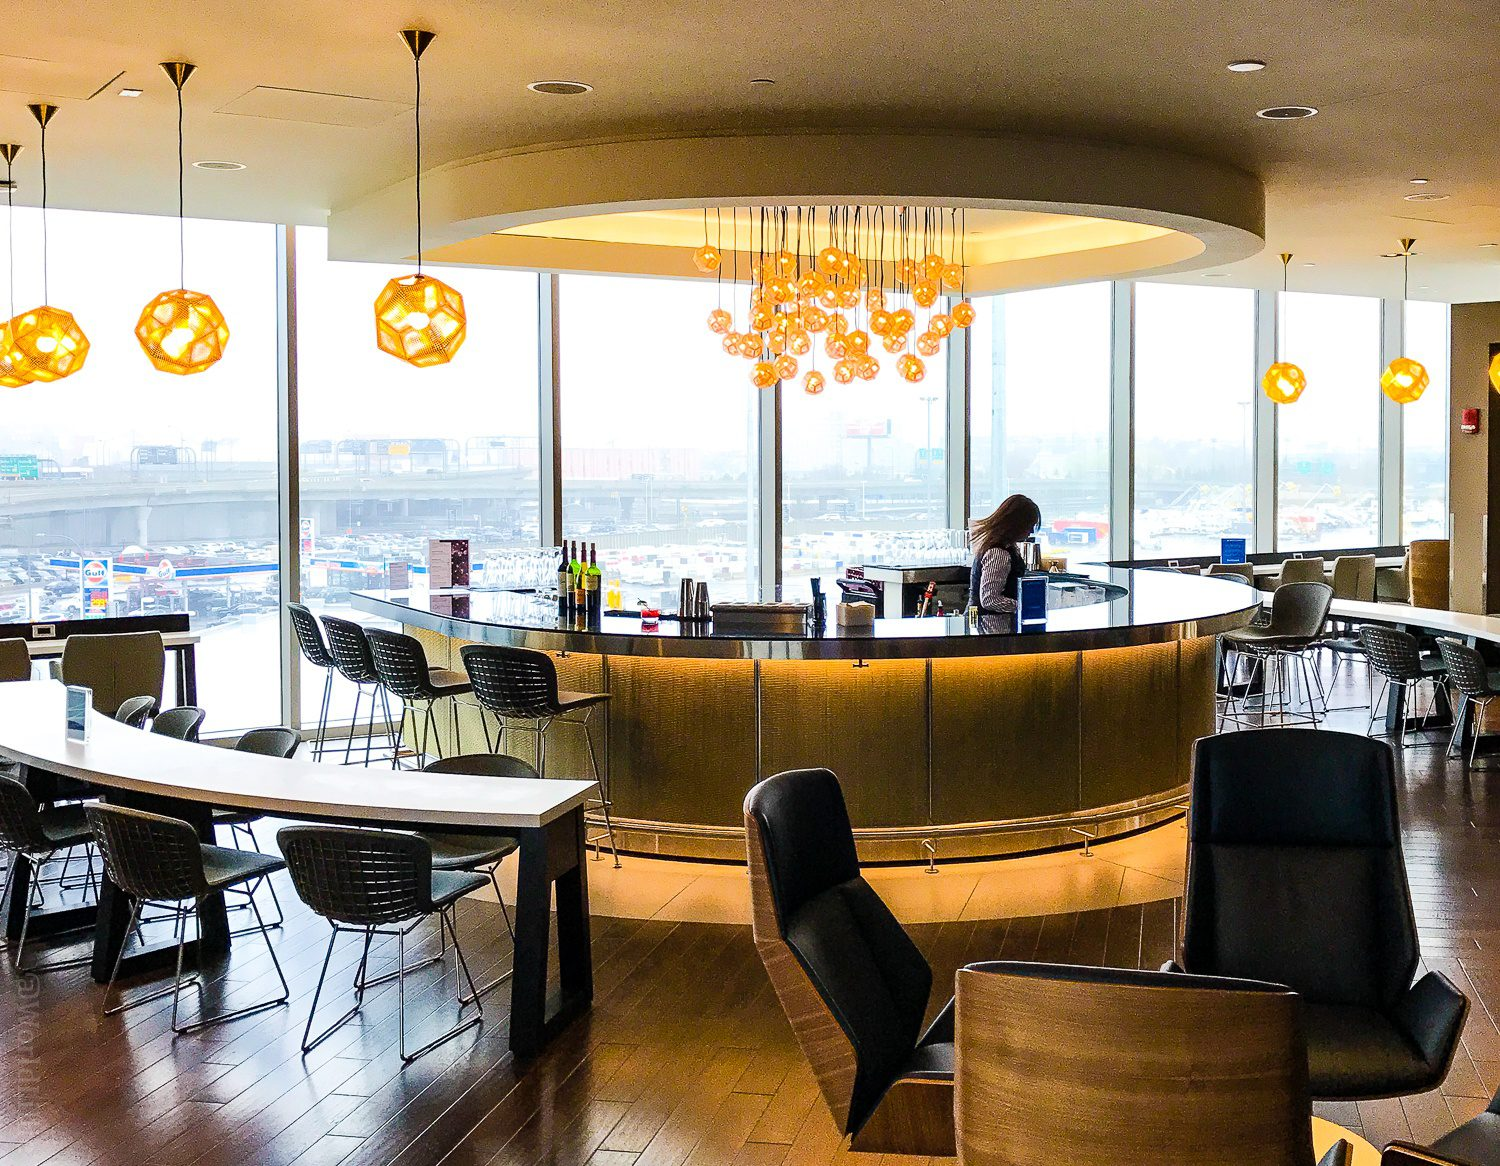 The centerpiece of the new British Airways lounge.